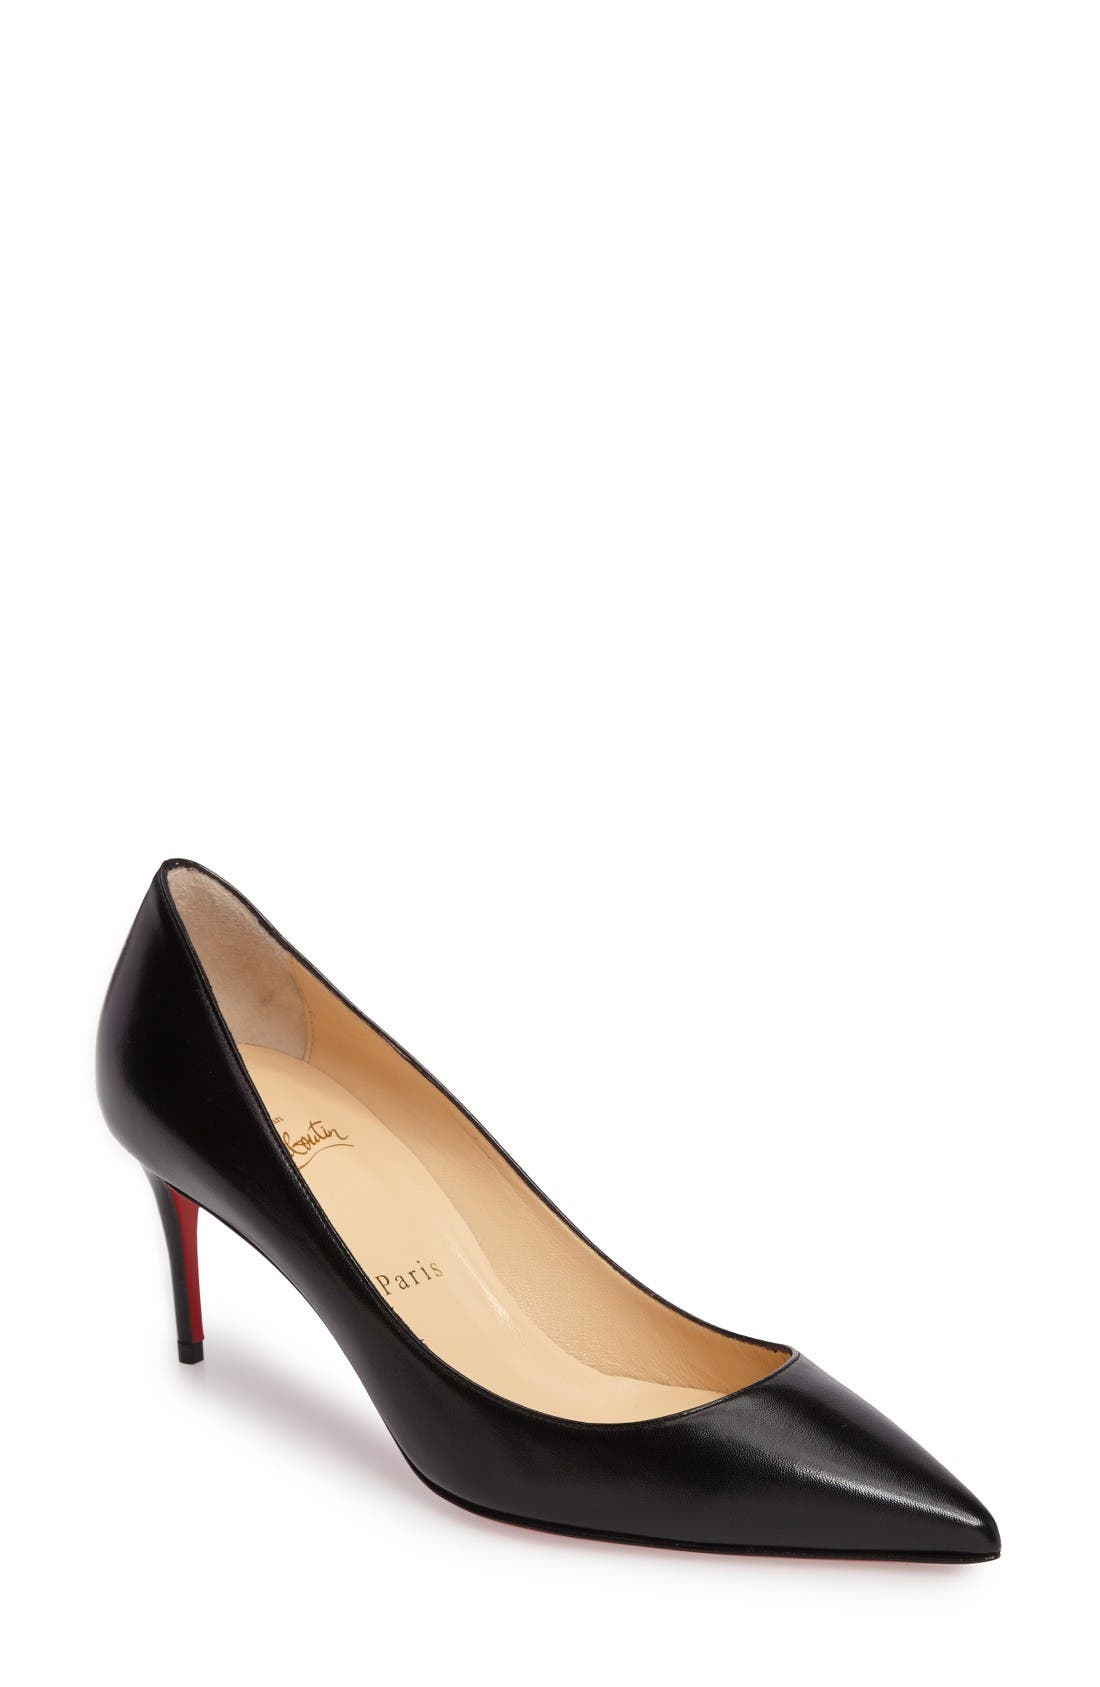 CHRISTIAN LOUBOUTIN 'Decollette' Pointy Toe Pump